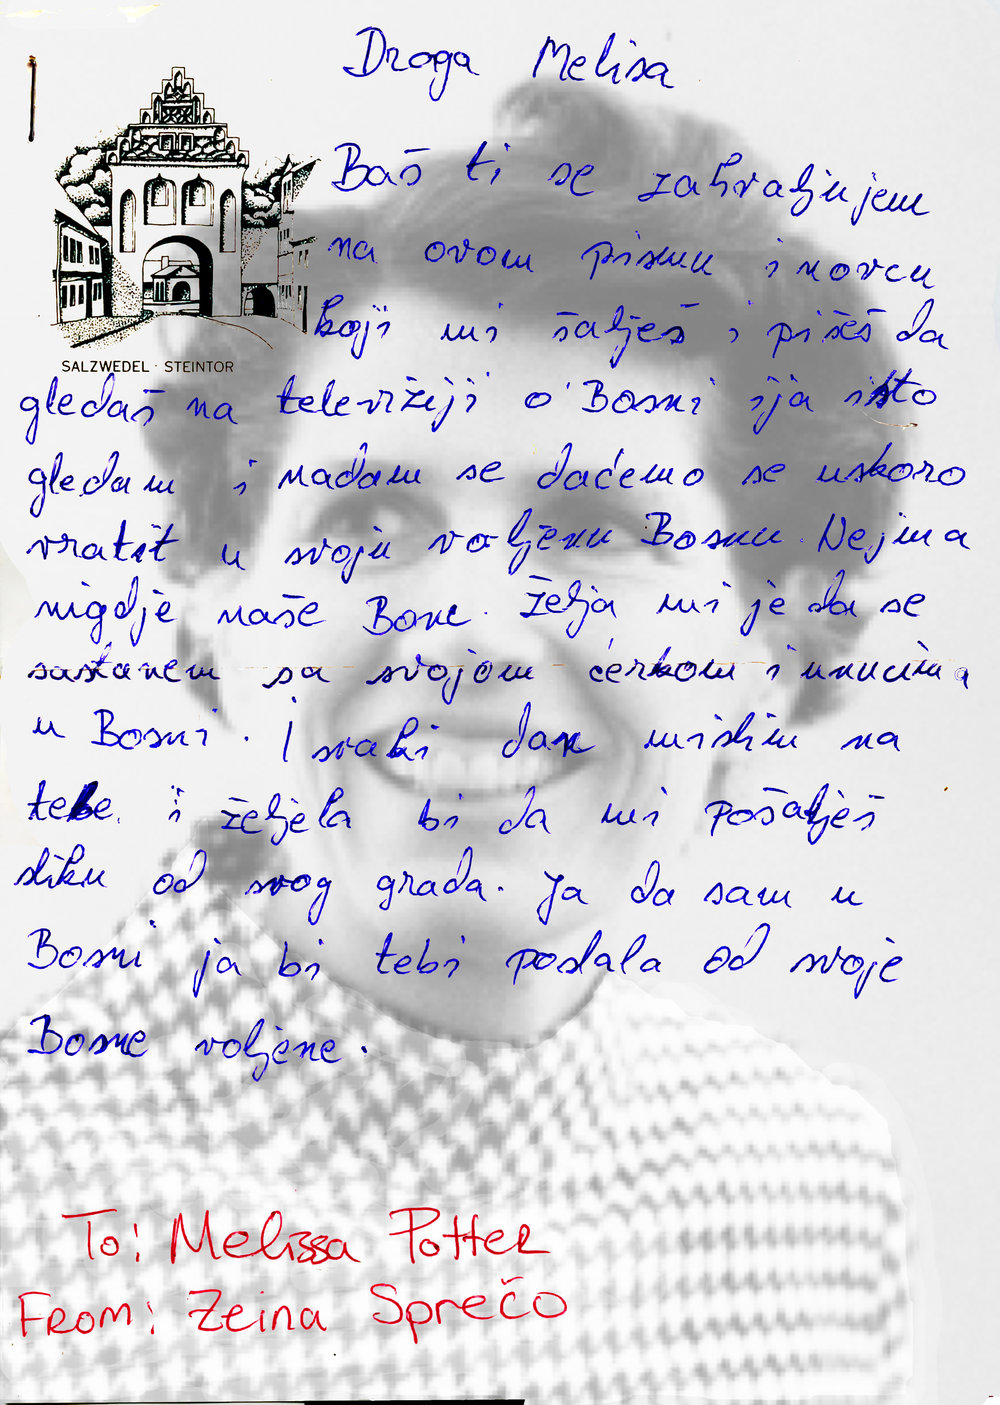 Photolithography of the letter Zejna wrote from a Croatian refugee camp, superimposed on a portrait of my grandmother.